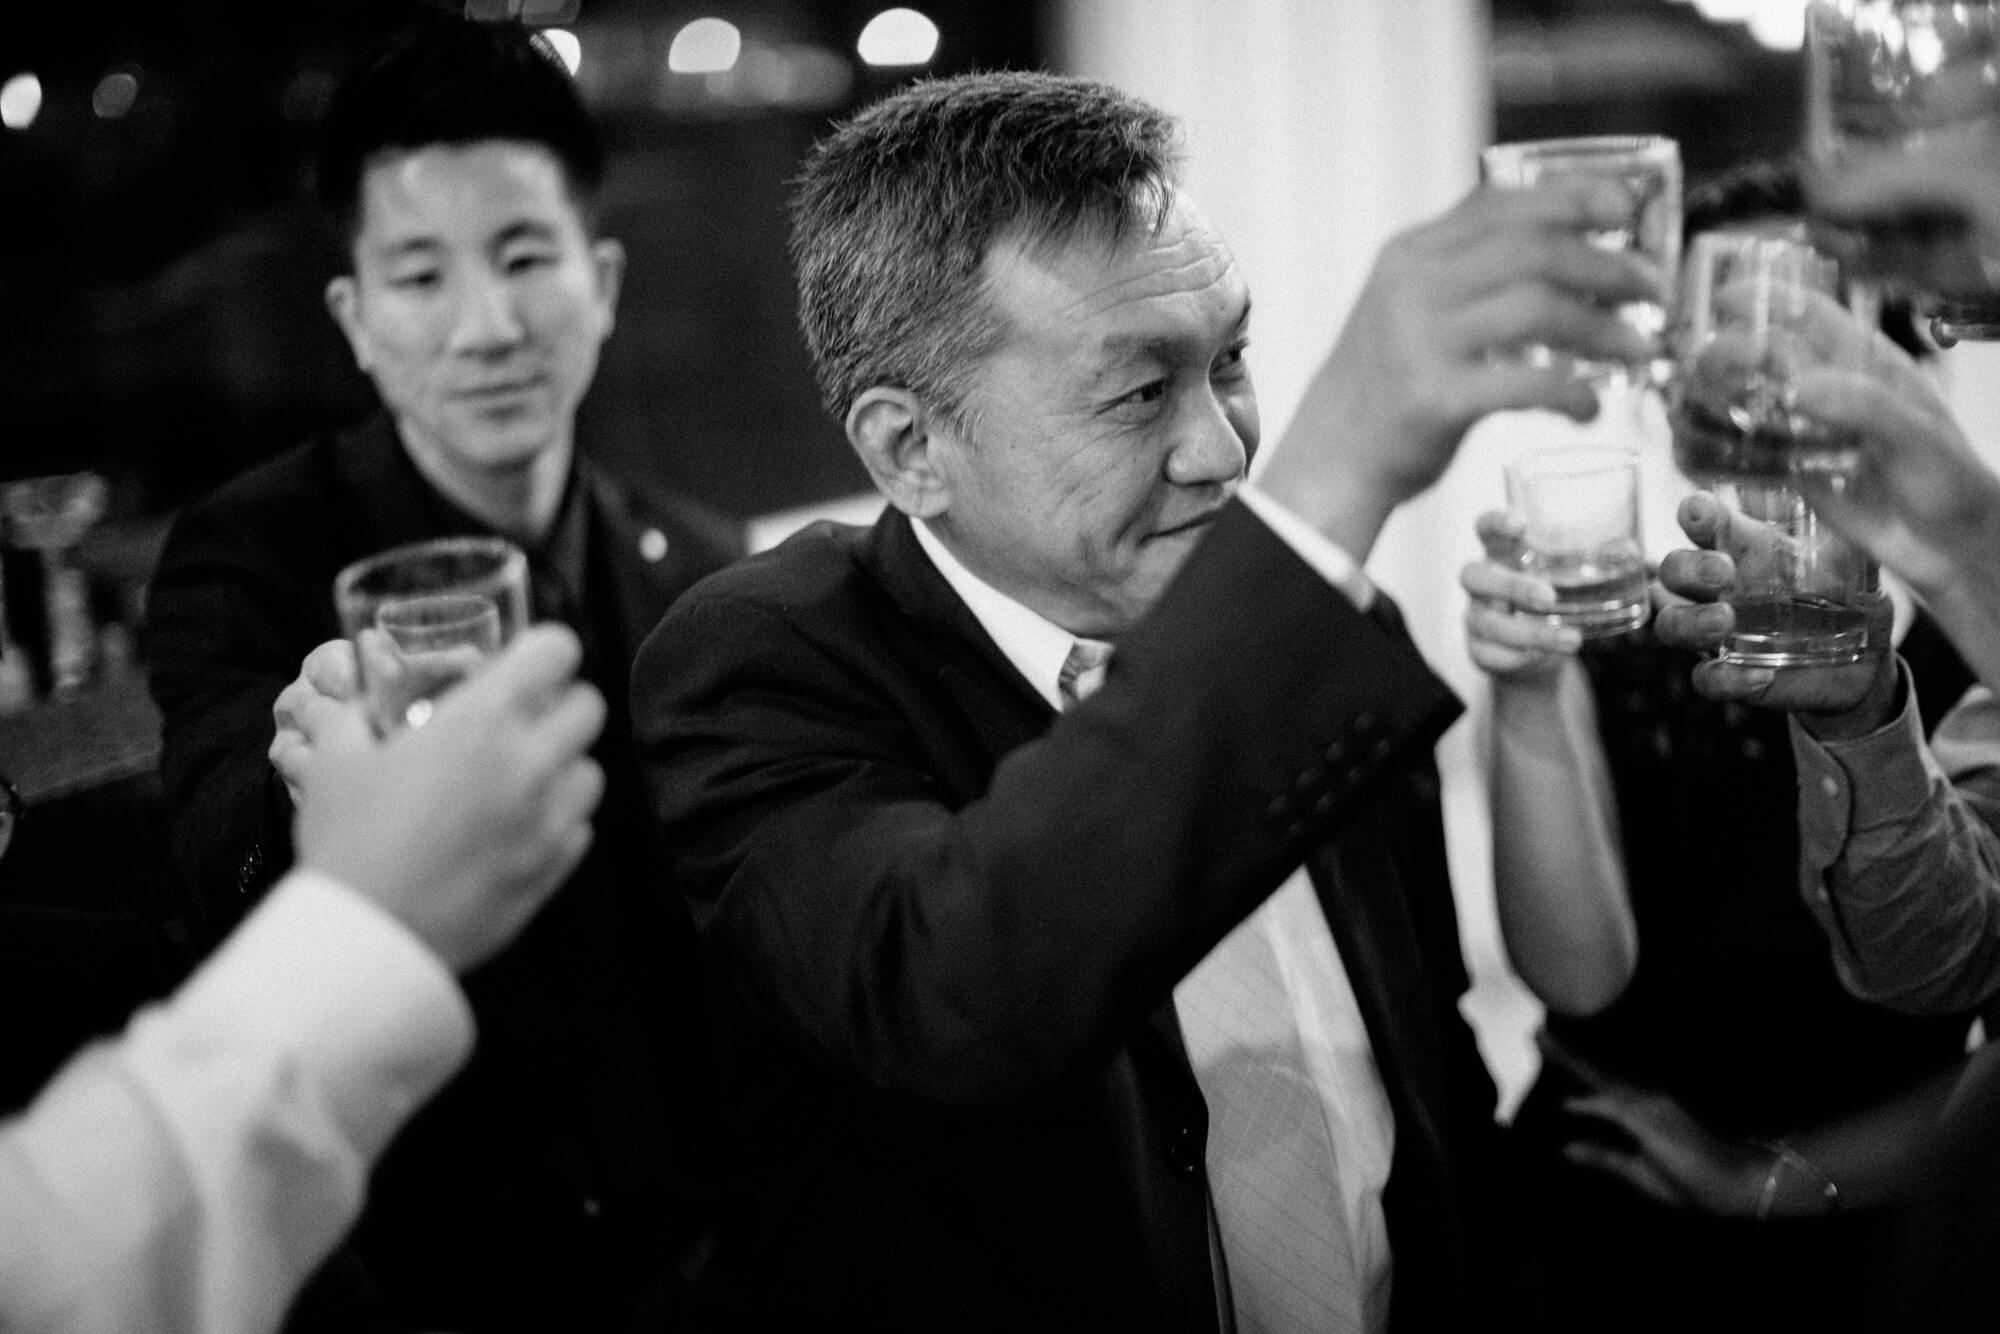 wedding guests raise glasses tequila shots